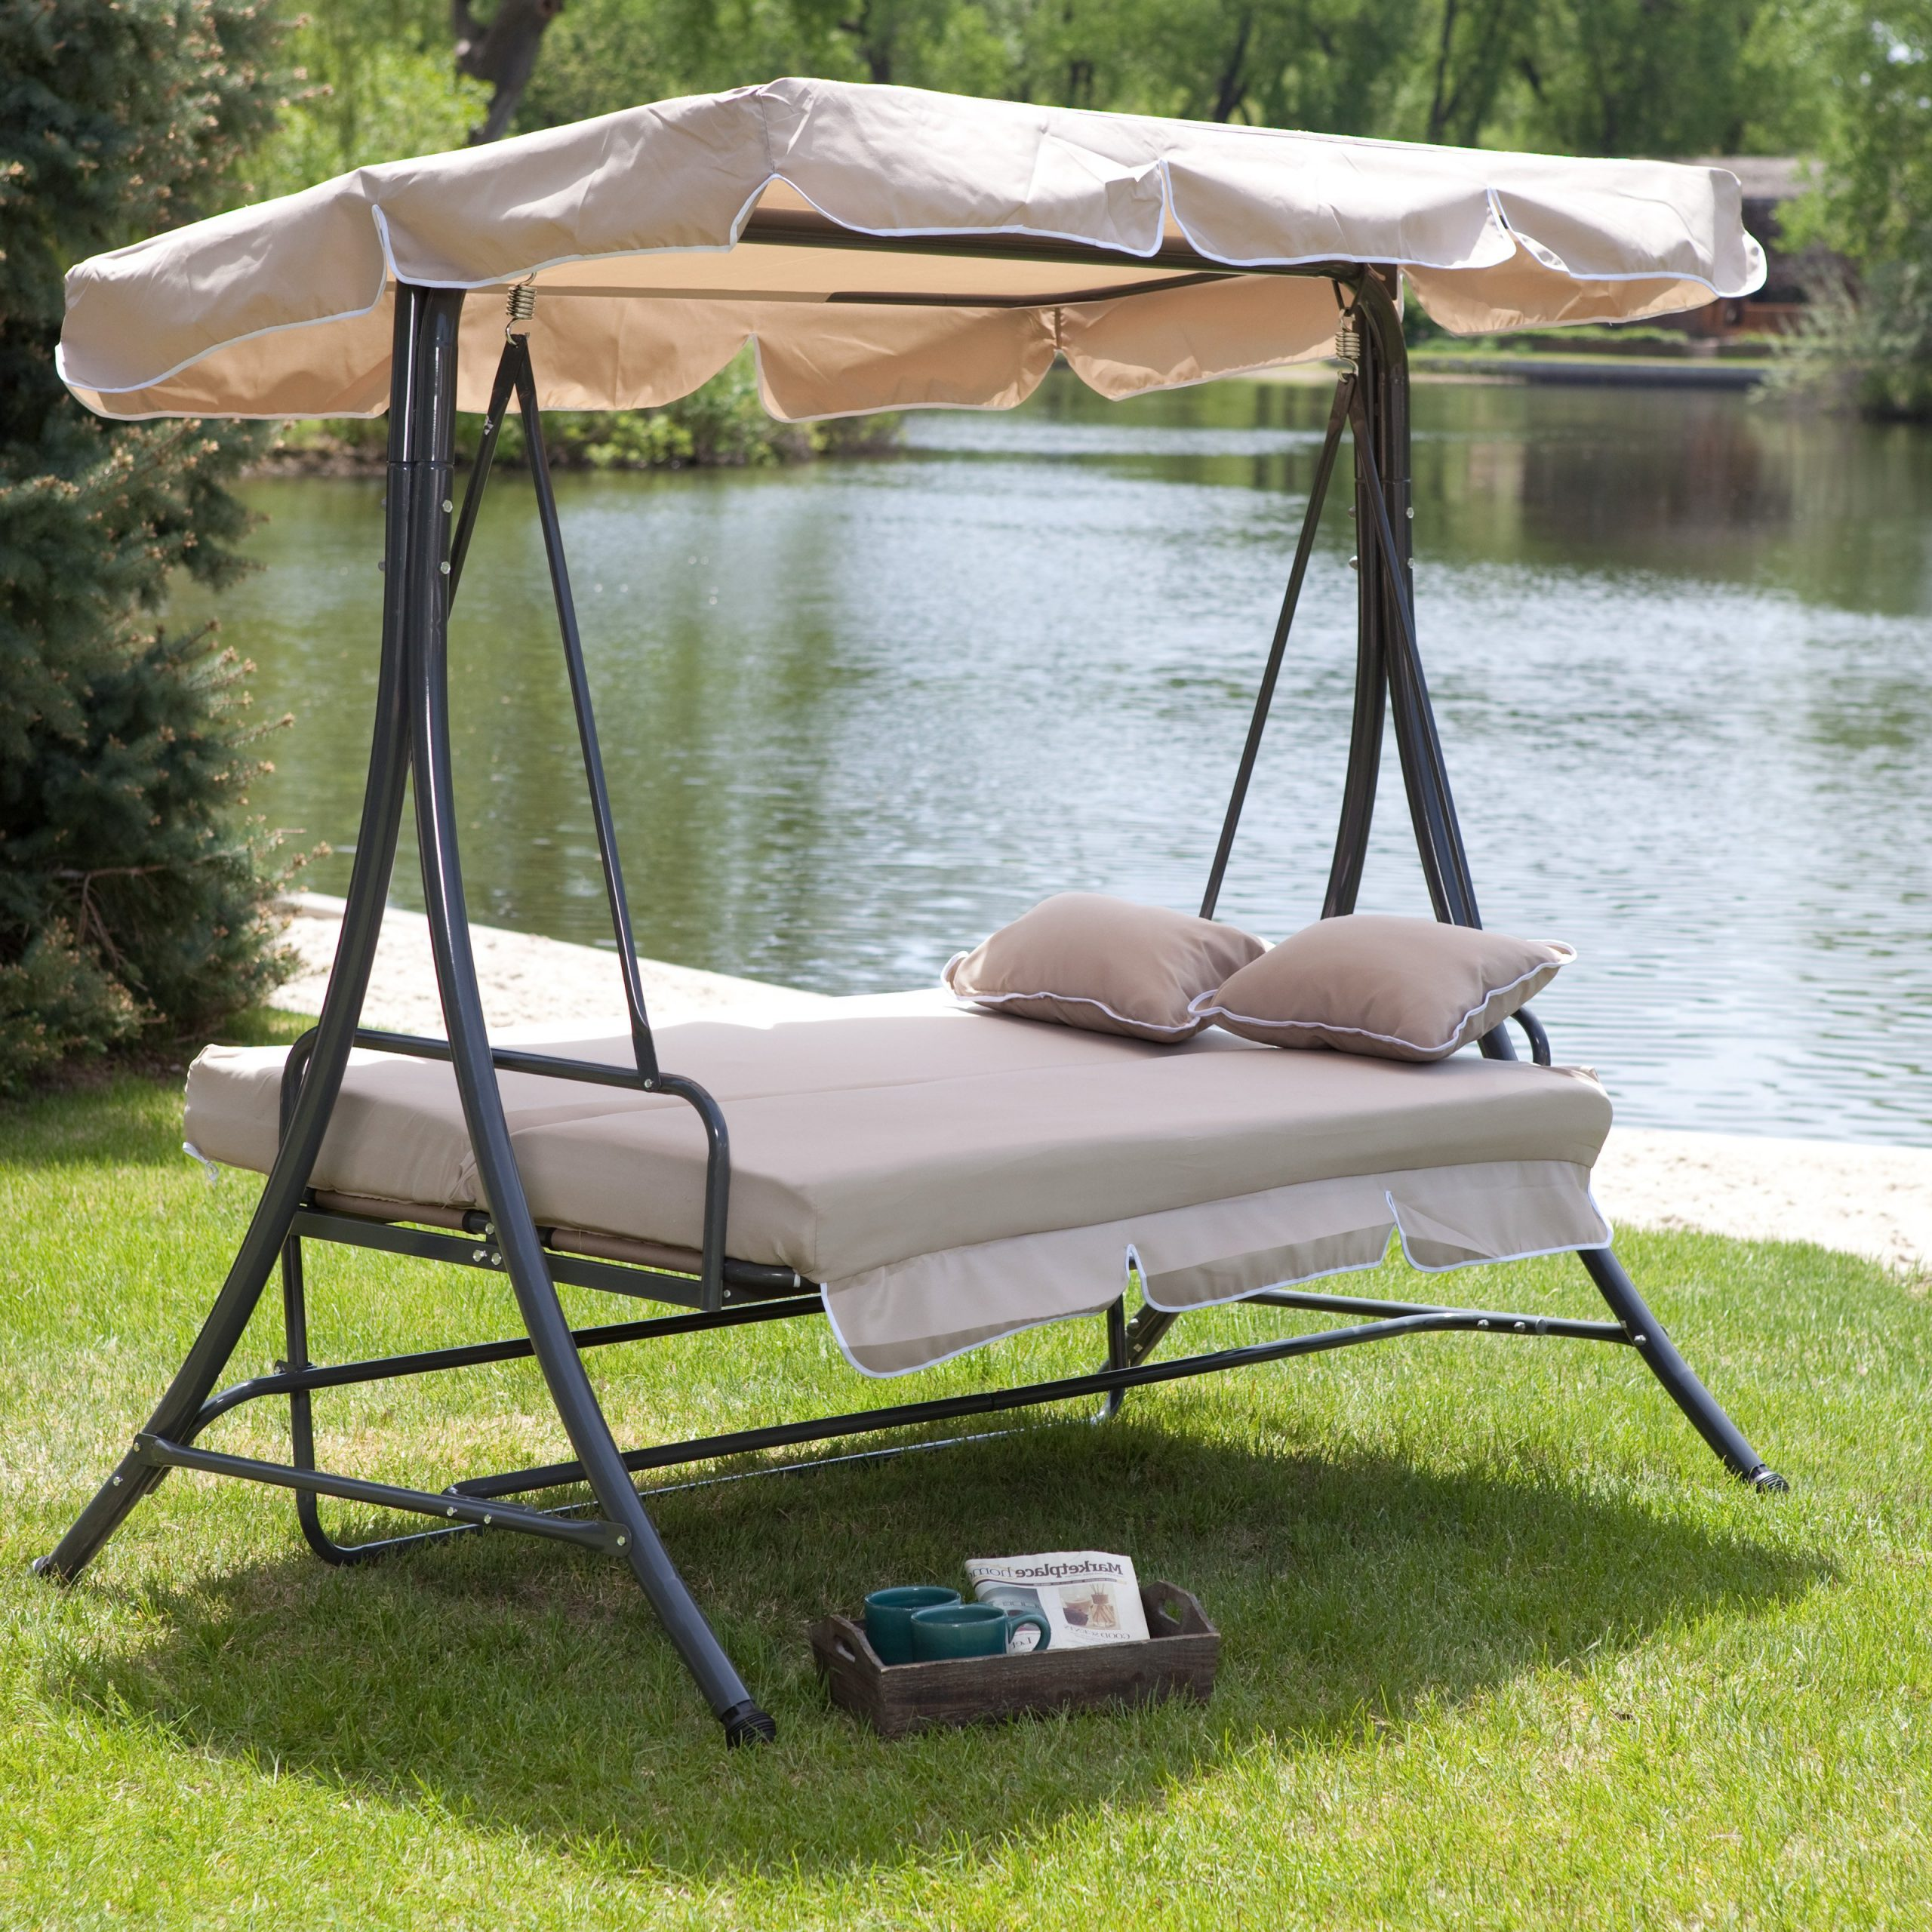 Hammock Patio Backyard Outdoor Swing Hanging Chair With Two Intended For 2019 Patio Gazebo Porch Canopy Swings (View 19 of 25)